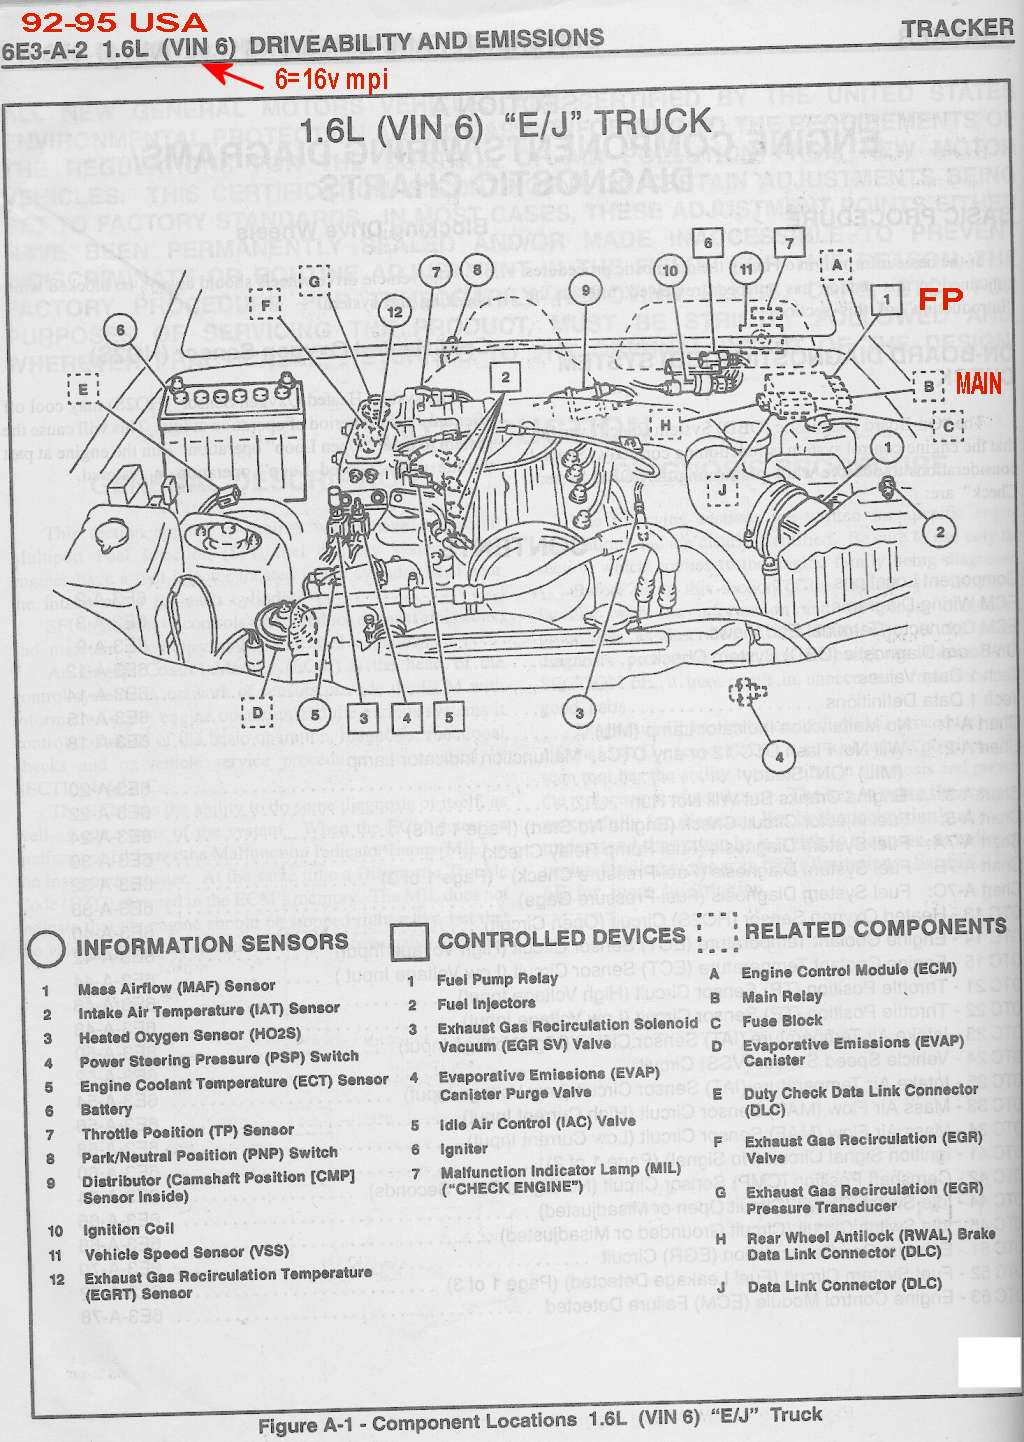 2000 Chevy Tracker Transmission Diagram Wiring Schematic Metro Geo Vacuum Free Engine Image For User Silverado C4 Corvette Harness